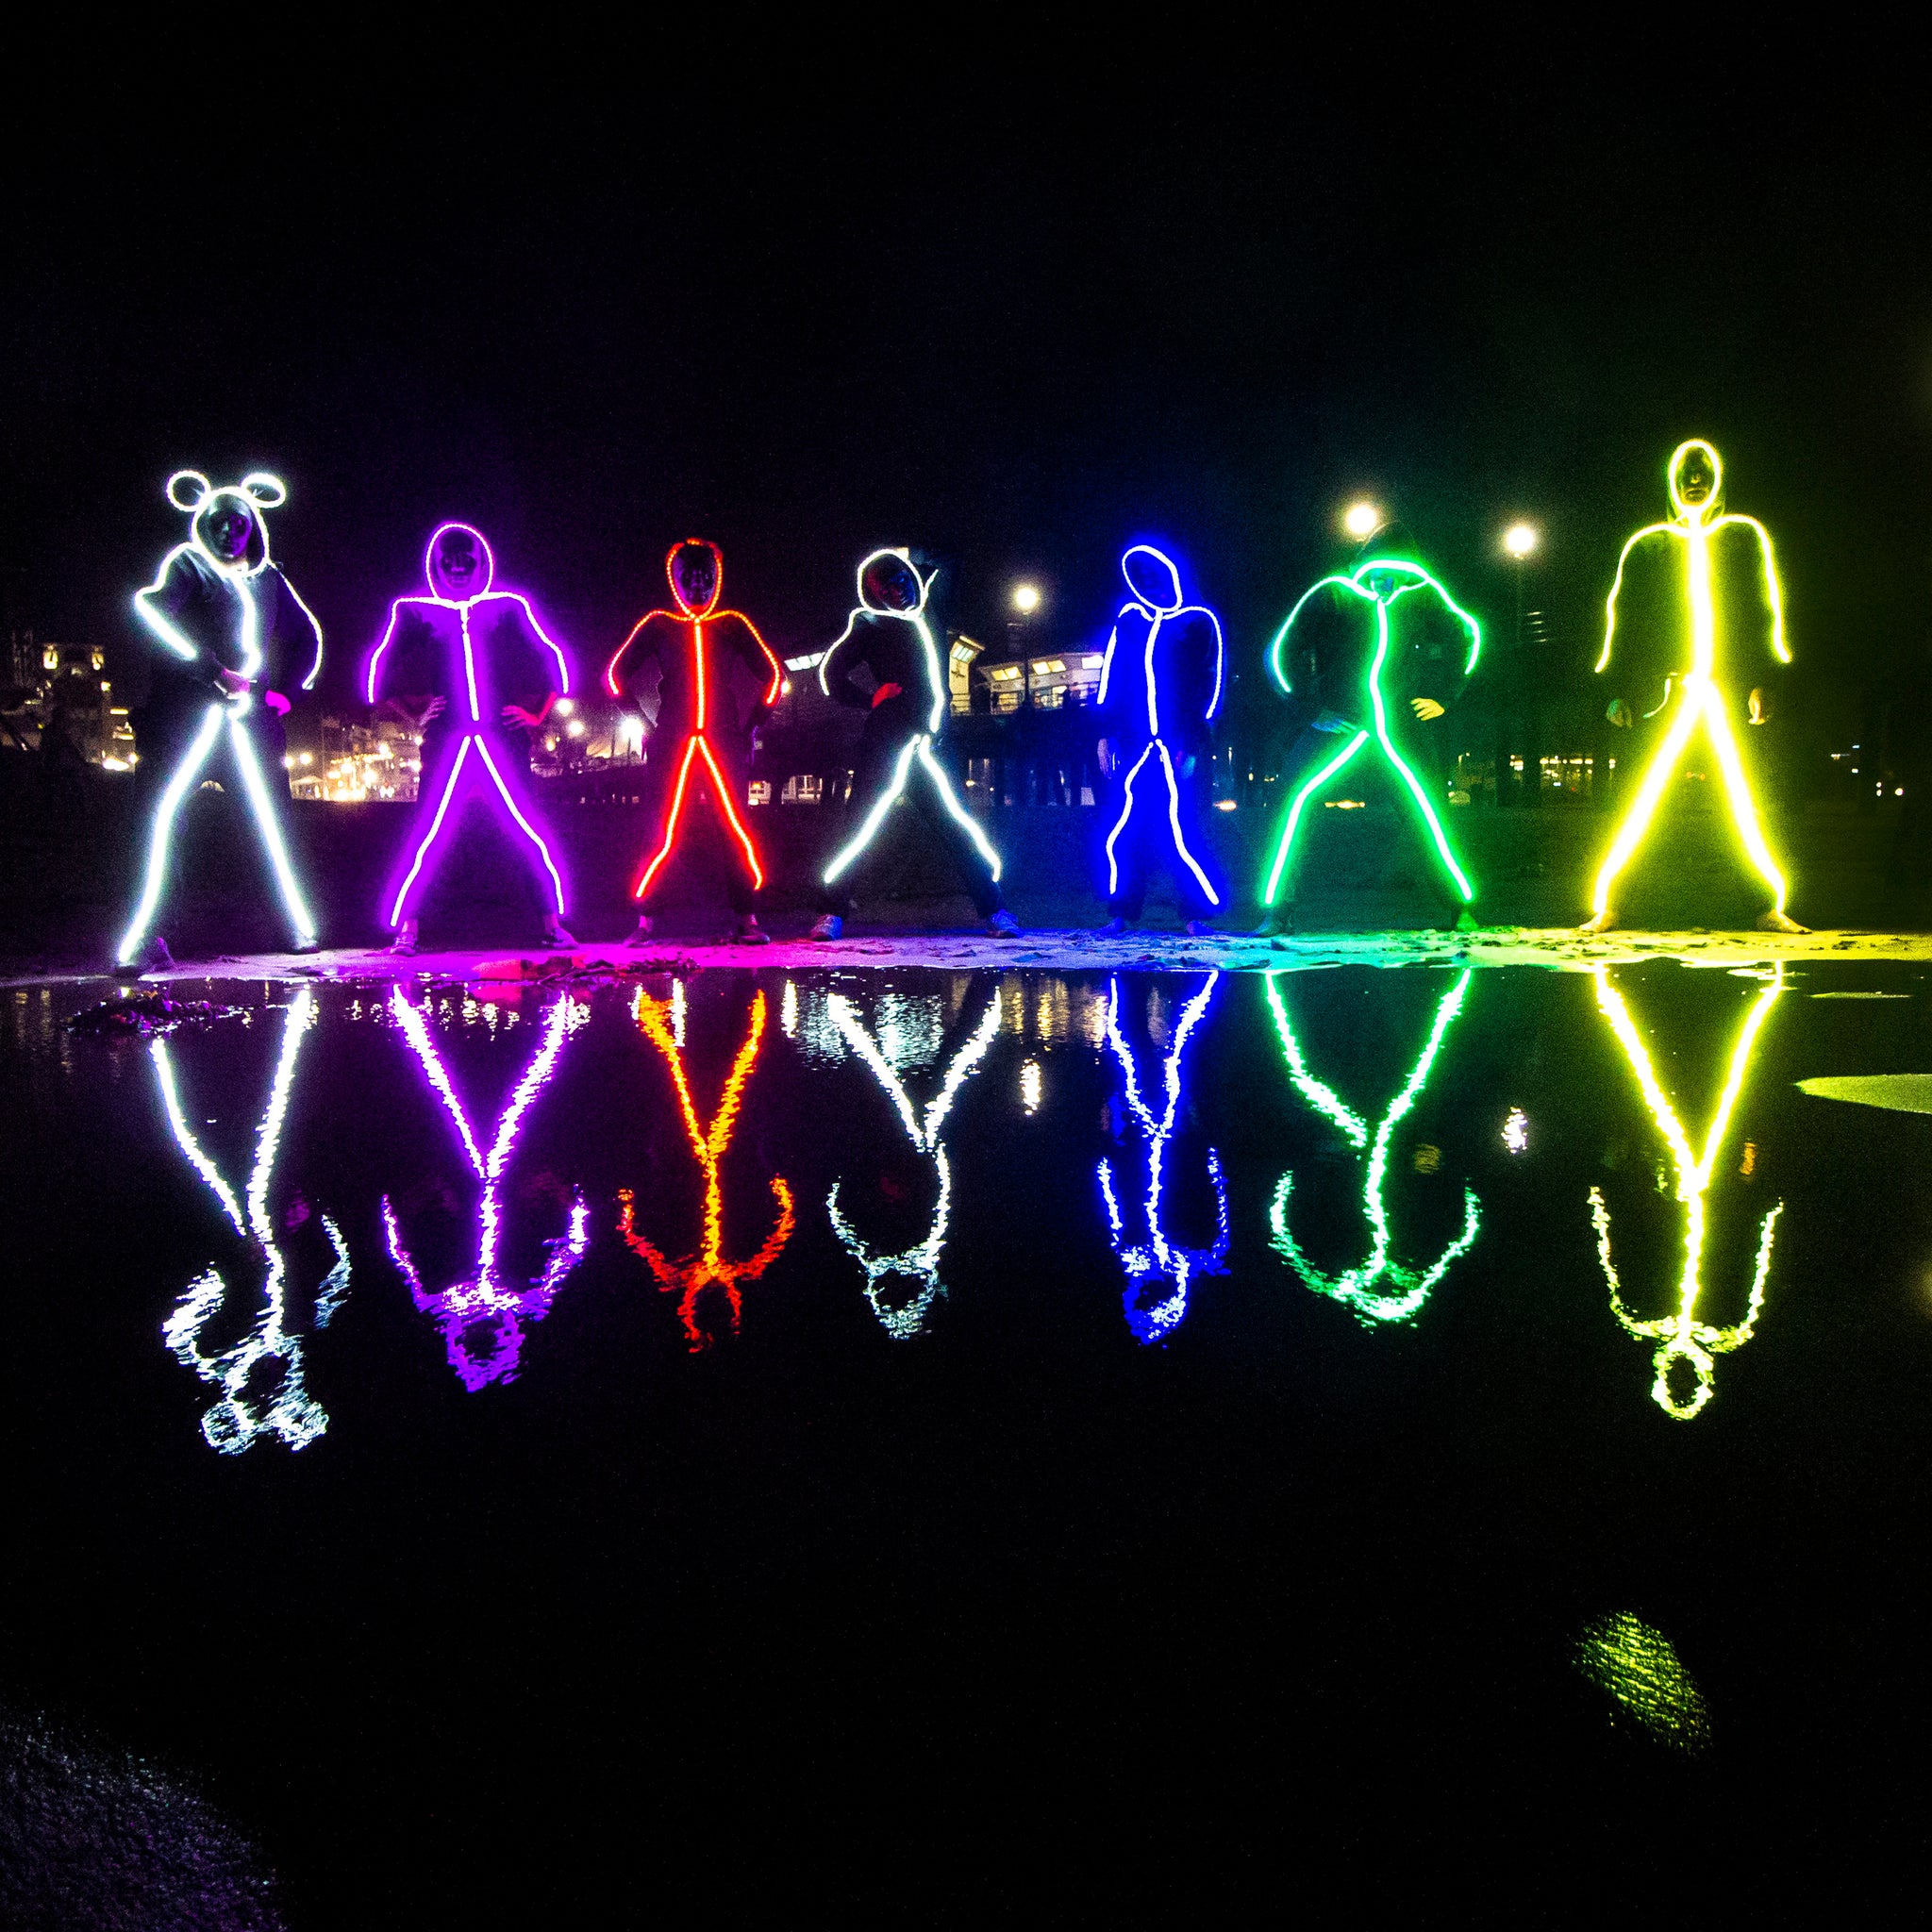 f1aeee1f407 Glowy Zoey - The World s Brightest LED stick figure suit